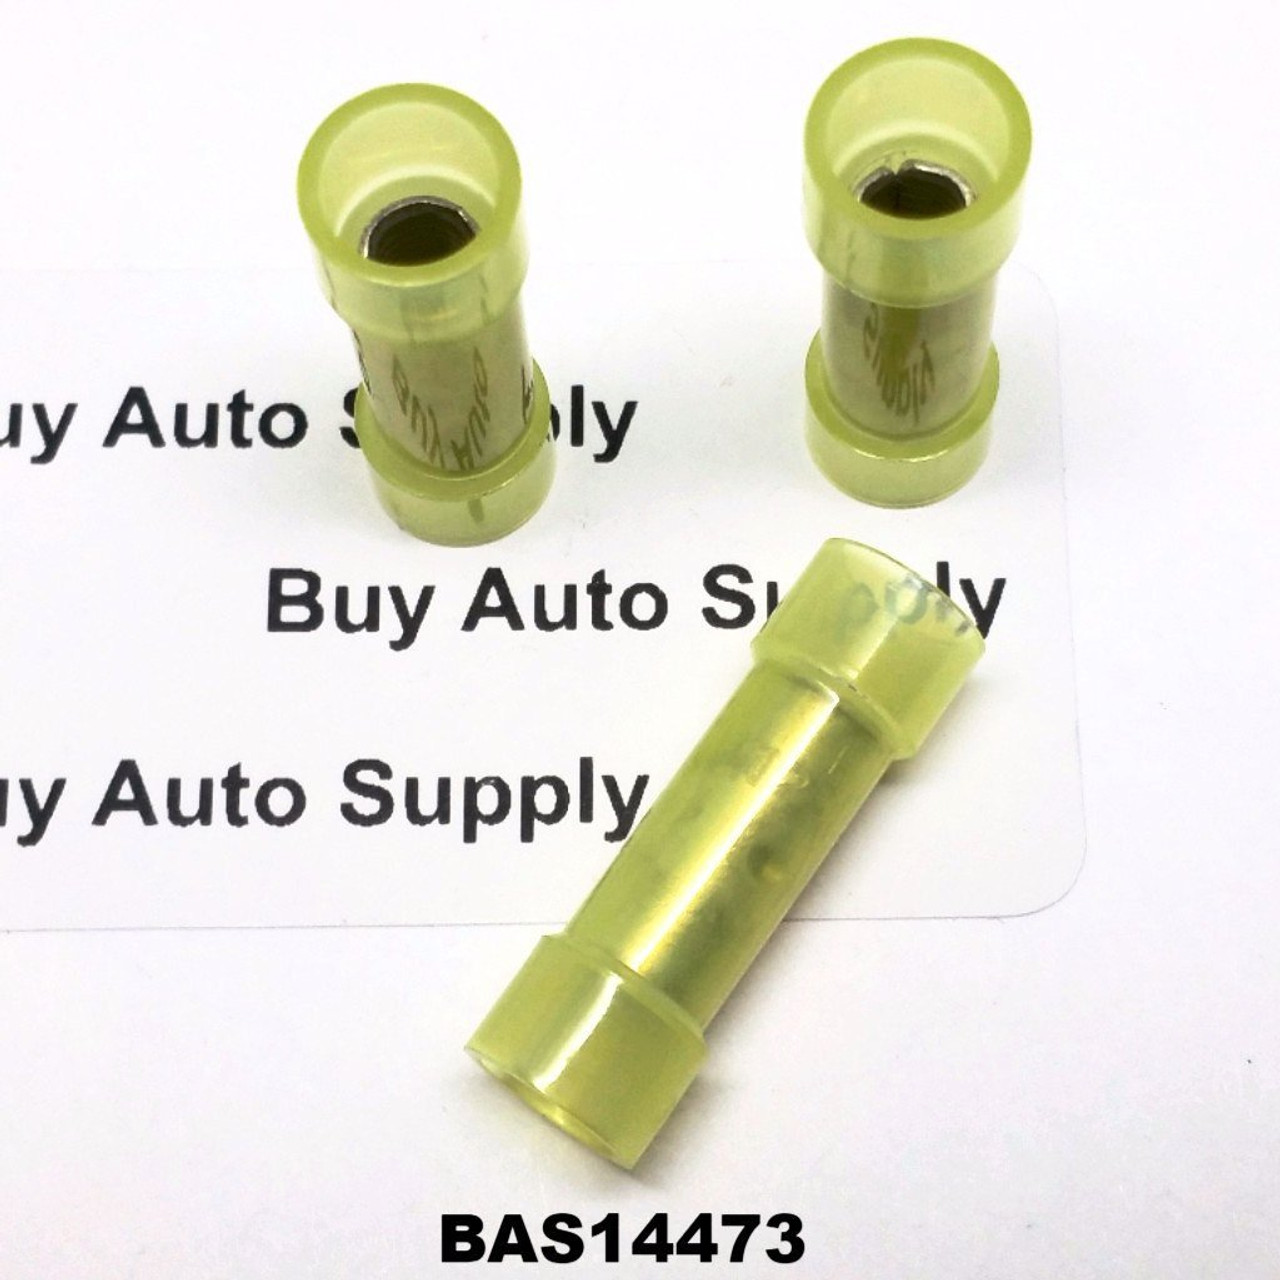 BAS14473 - Yellow Nylon Butt Connector - Made in USA - from Buy Auto Supply